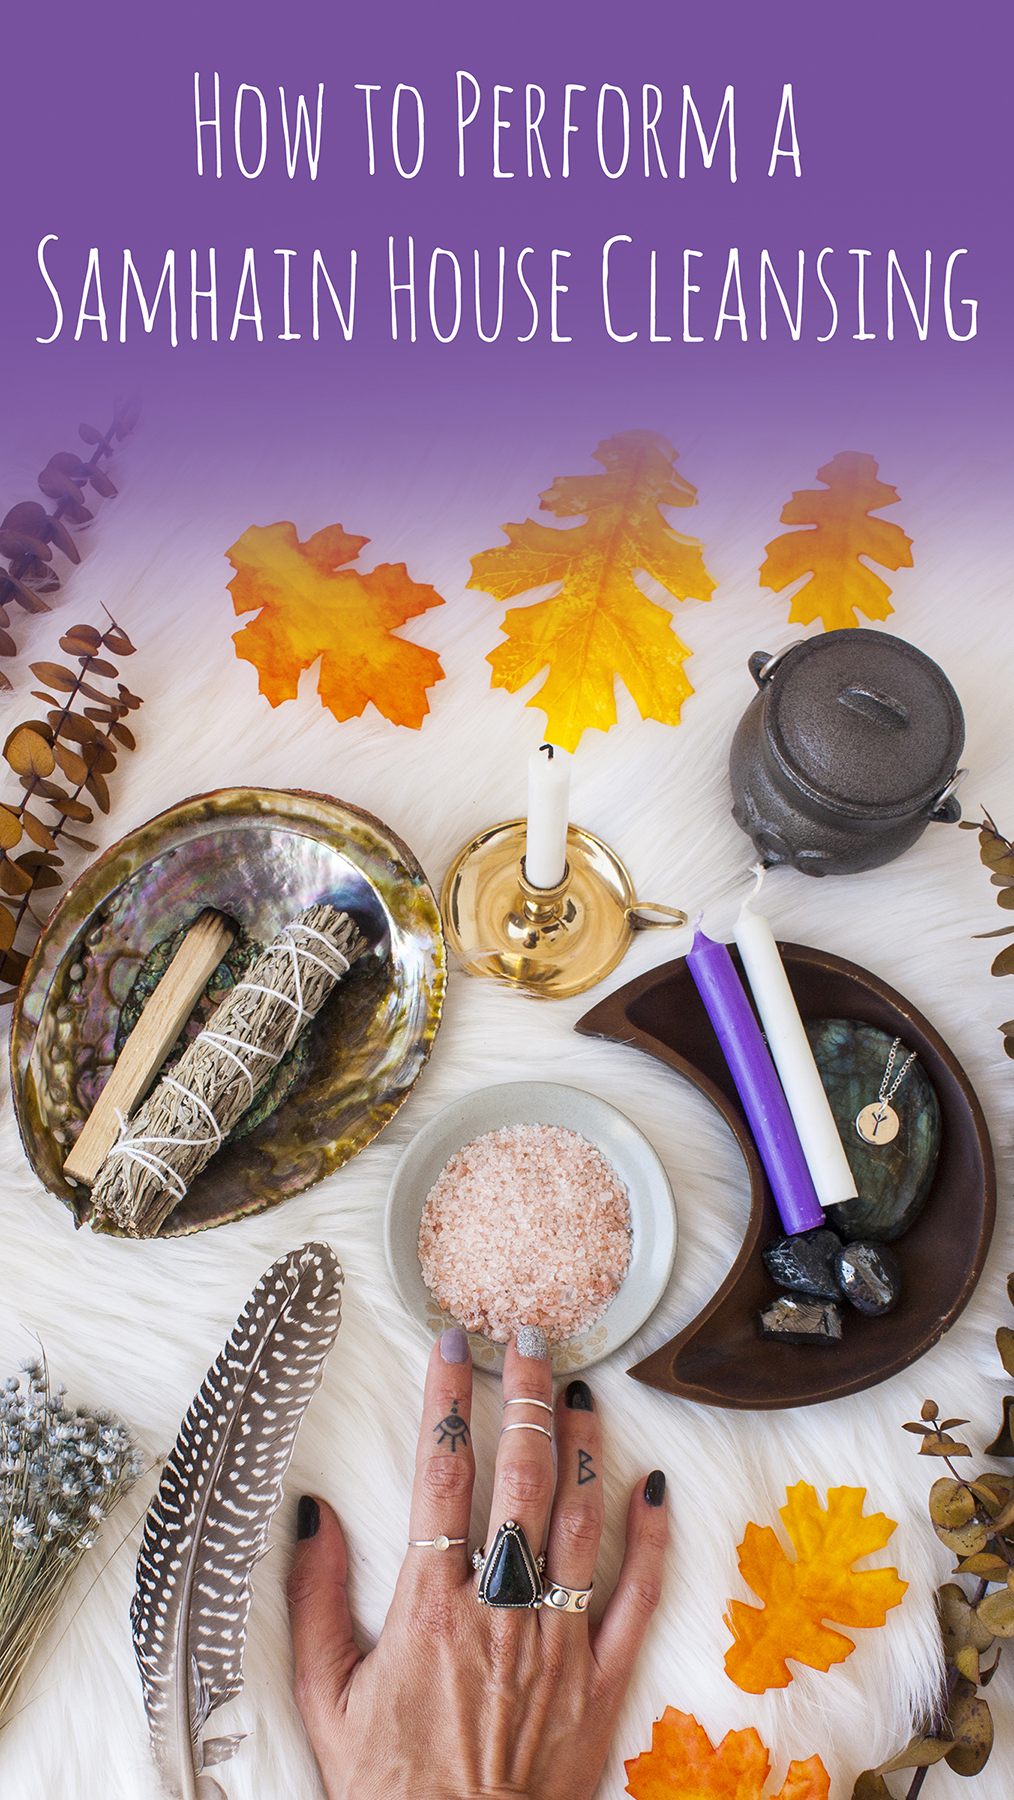 pic2-how-to-perform-samhain-house-cleanse